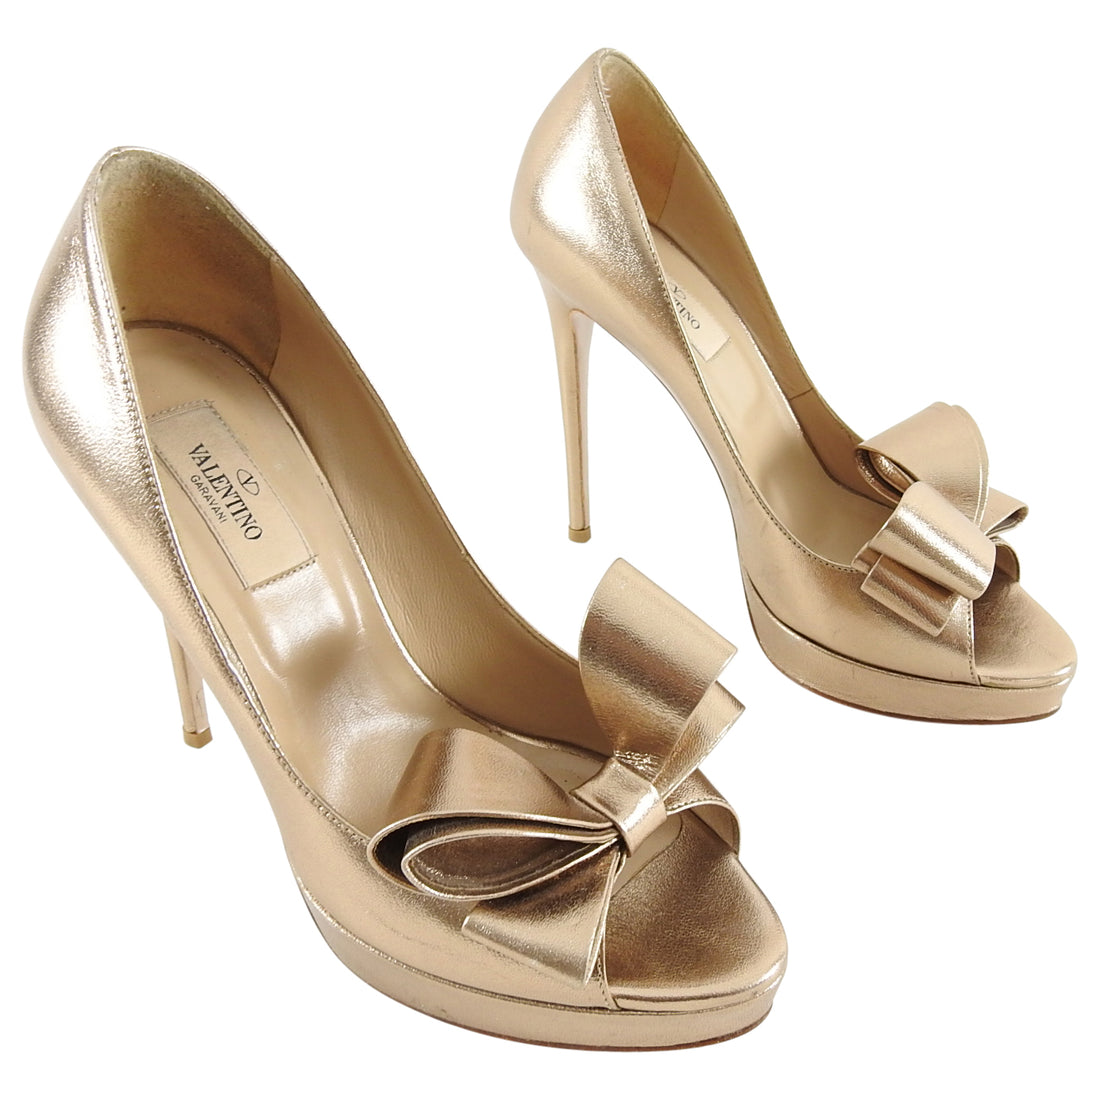 Valentino Metallic Gold Peep Toe Bow Platform Pumps - 38